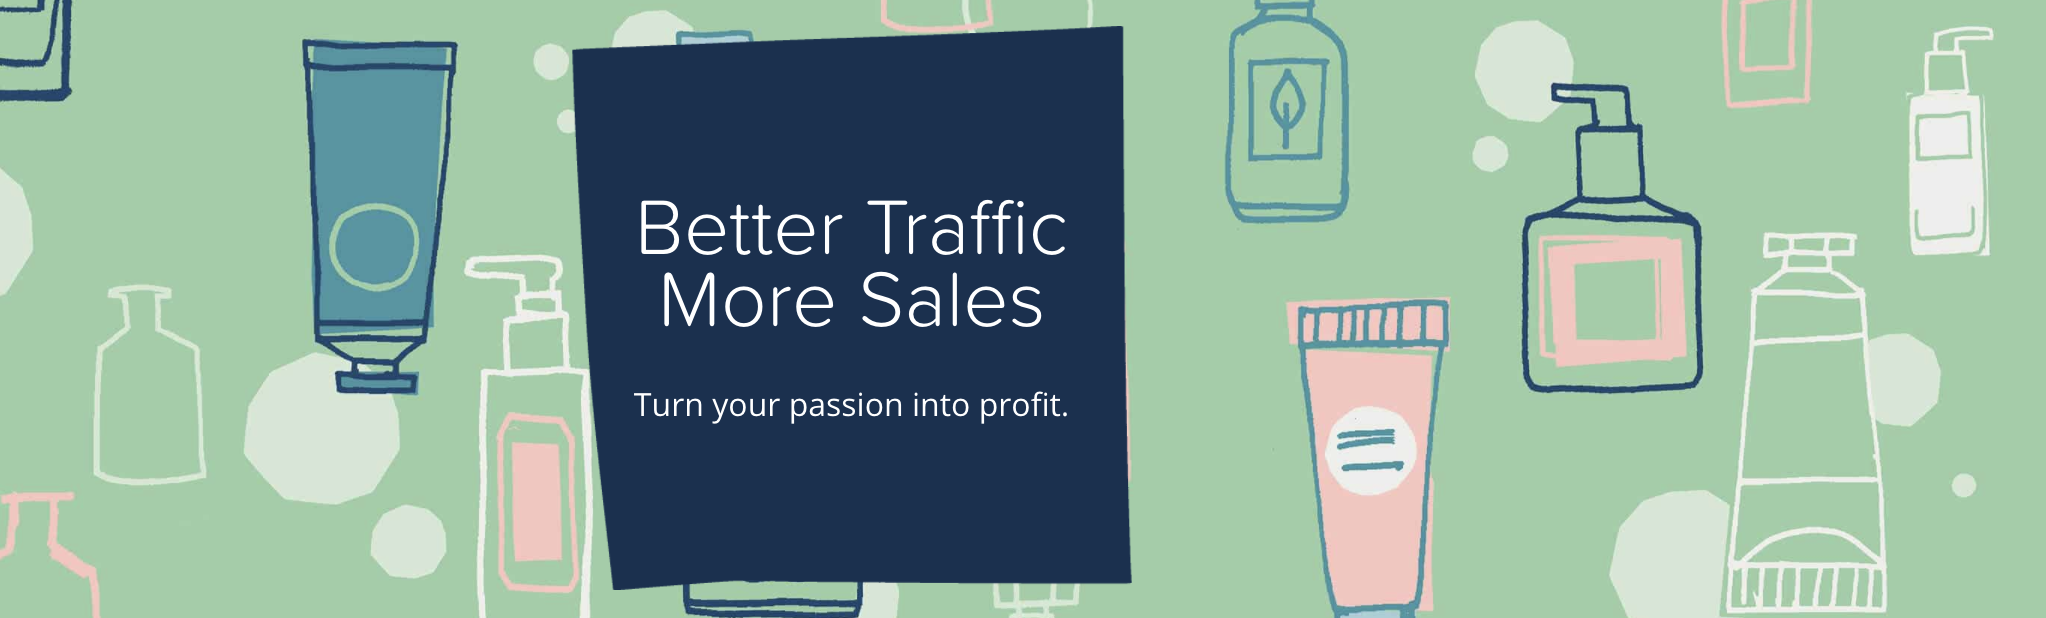 Better Traffic More Sales by the efficiency hub